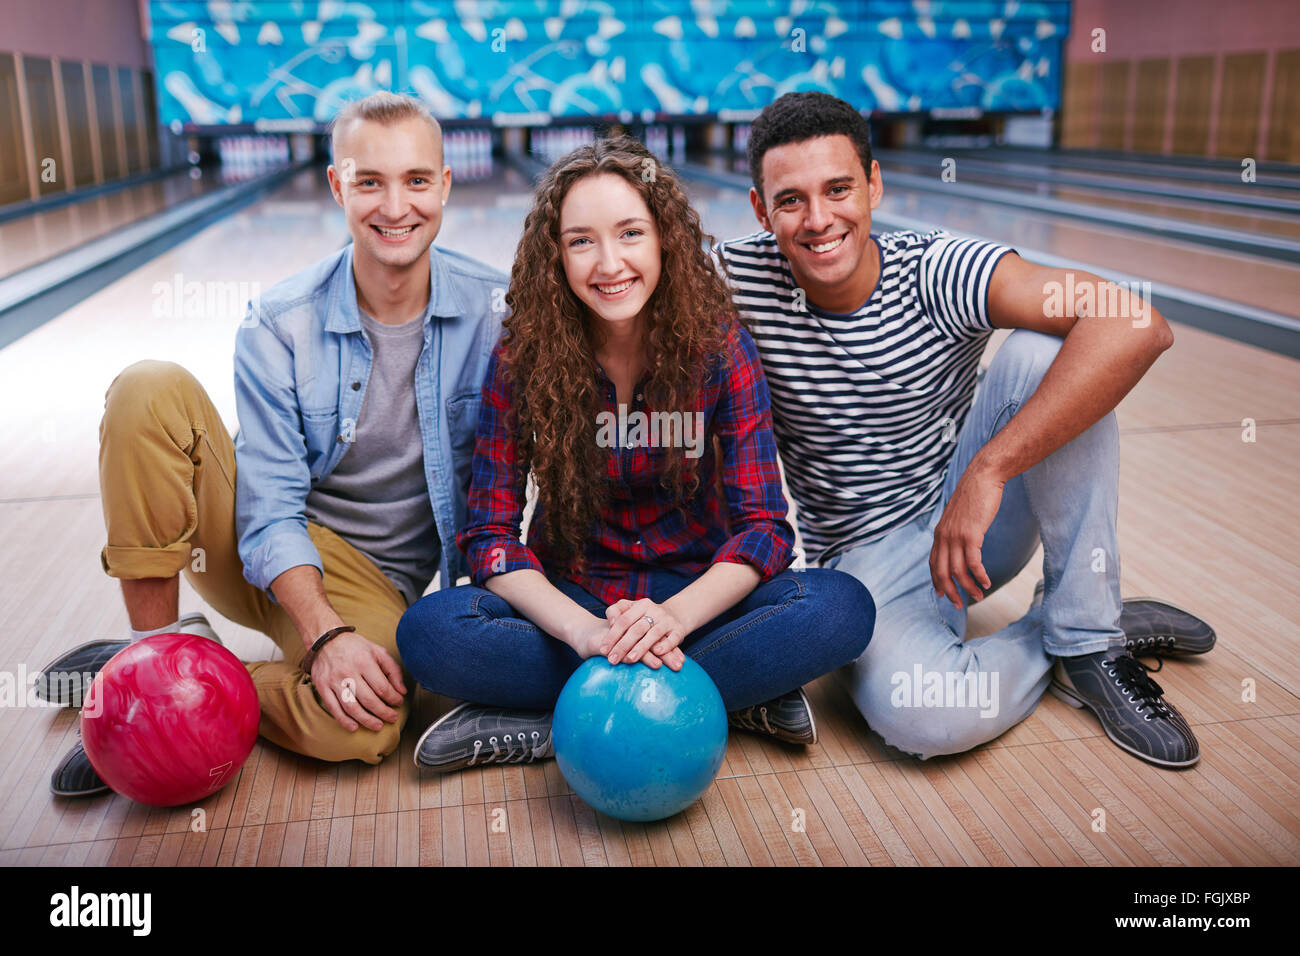 Friendly people with bowling balls sitting on the floor at bowling alley - Stock Image